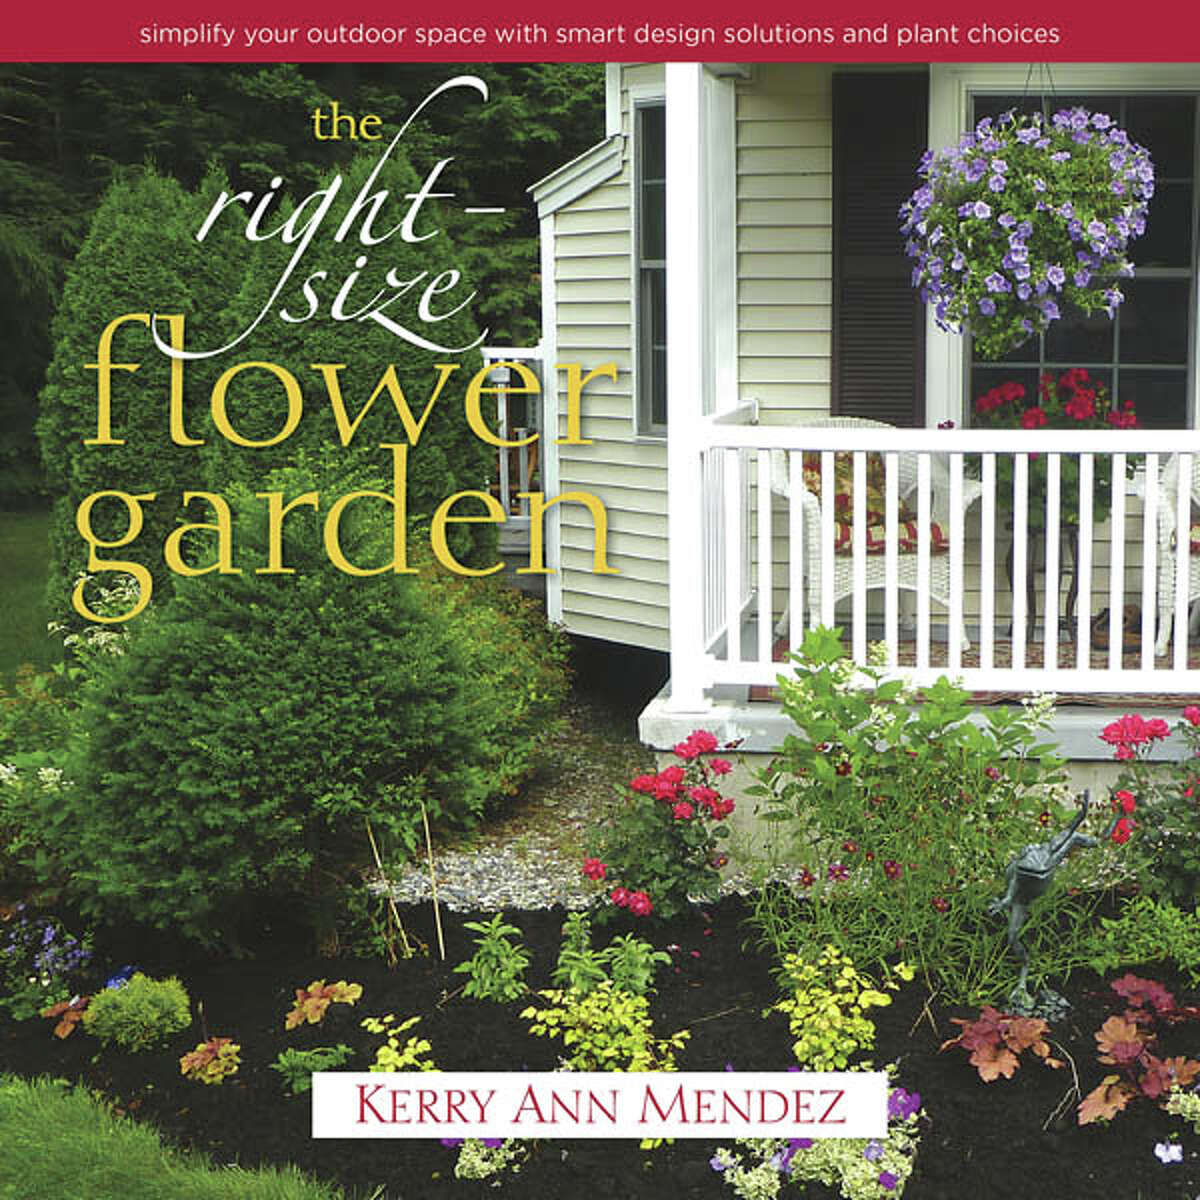 The Right-Size Flower Garden: Simplify Your Outdoor Space with Smart Design Solutions and Plant Choices by Kerry Ann Mendez